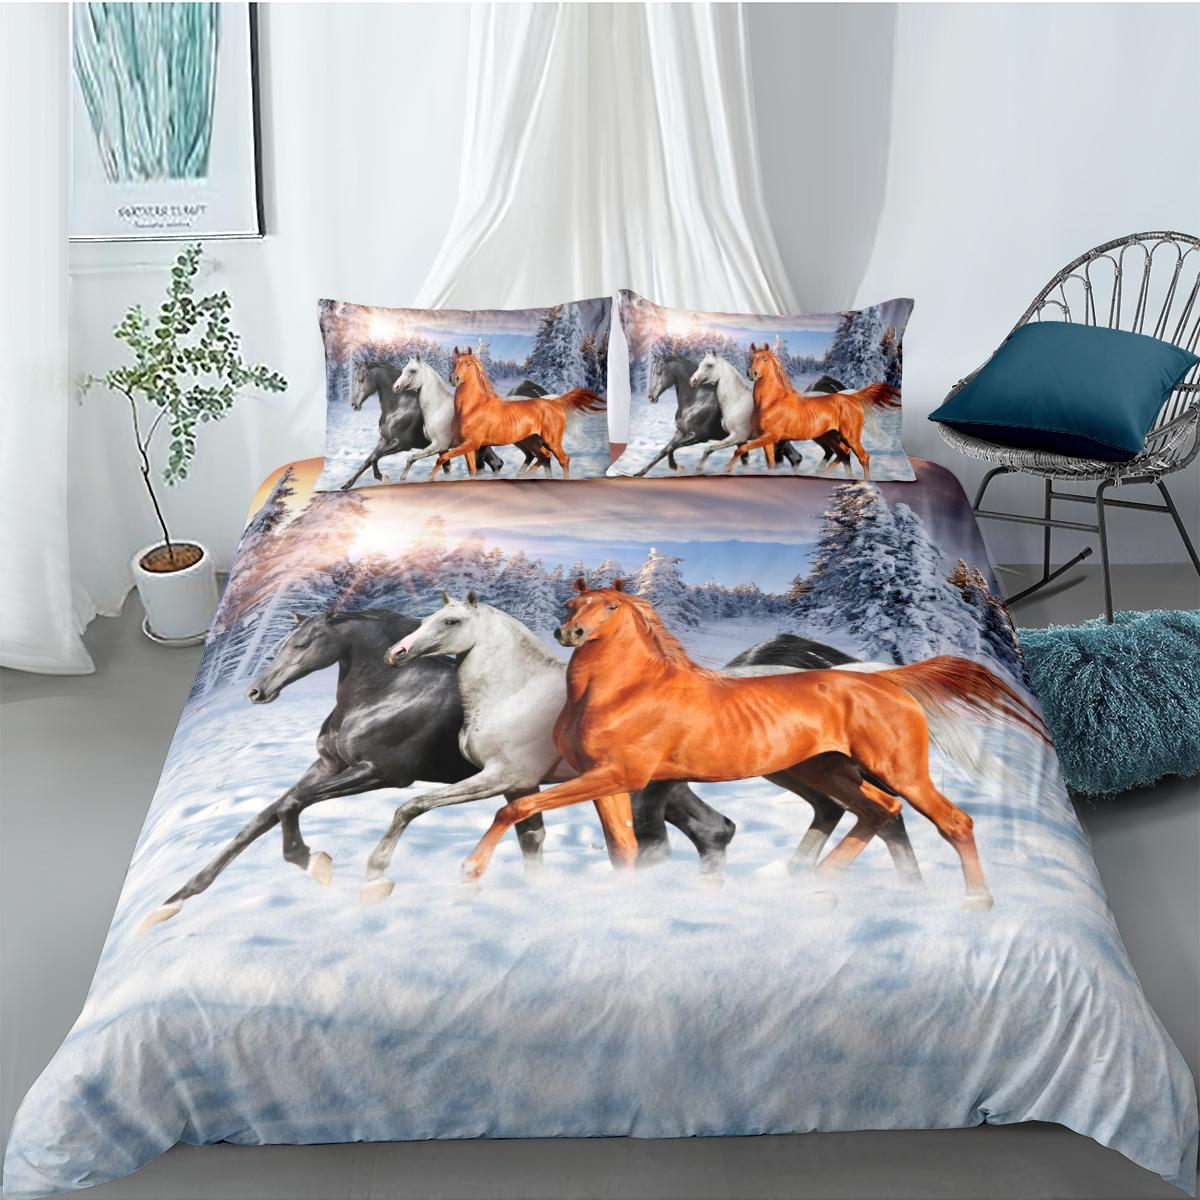 Microfiber 3D Duvet Cover with Pillow Cases Quilt Cover Bedding Set All Sizes